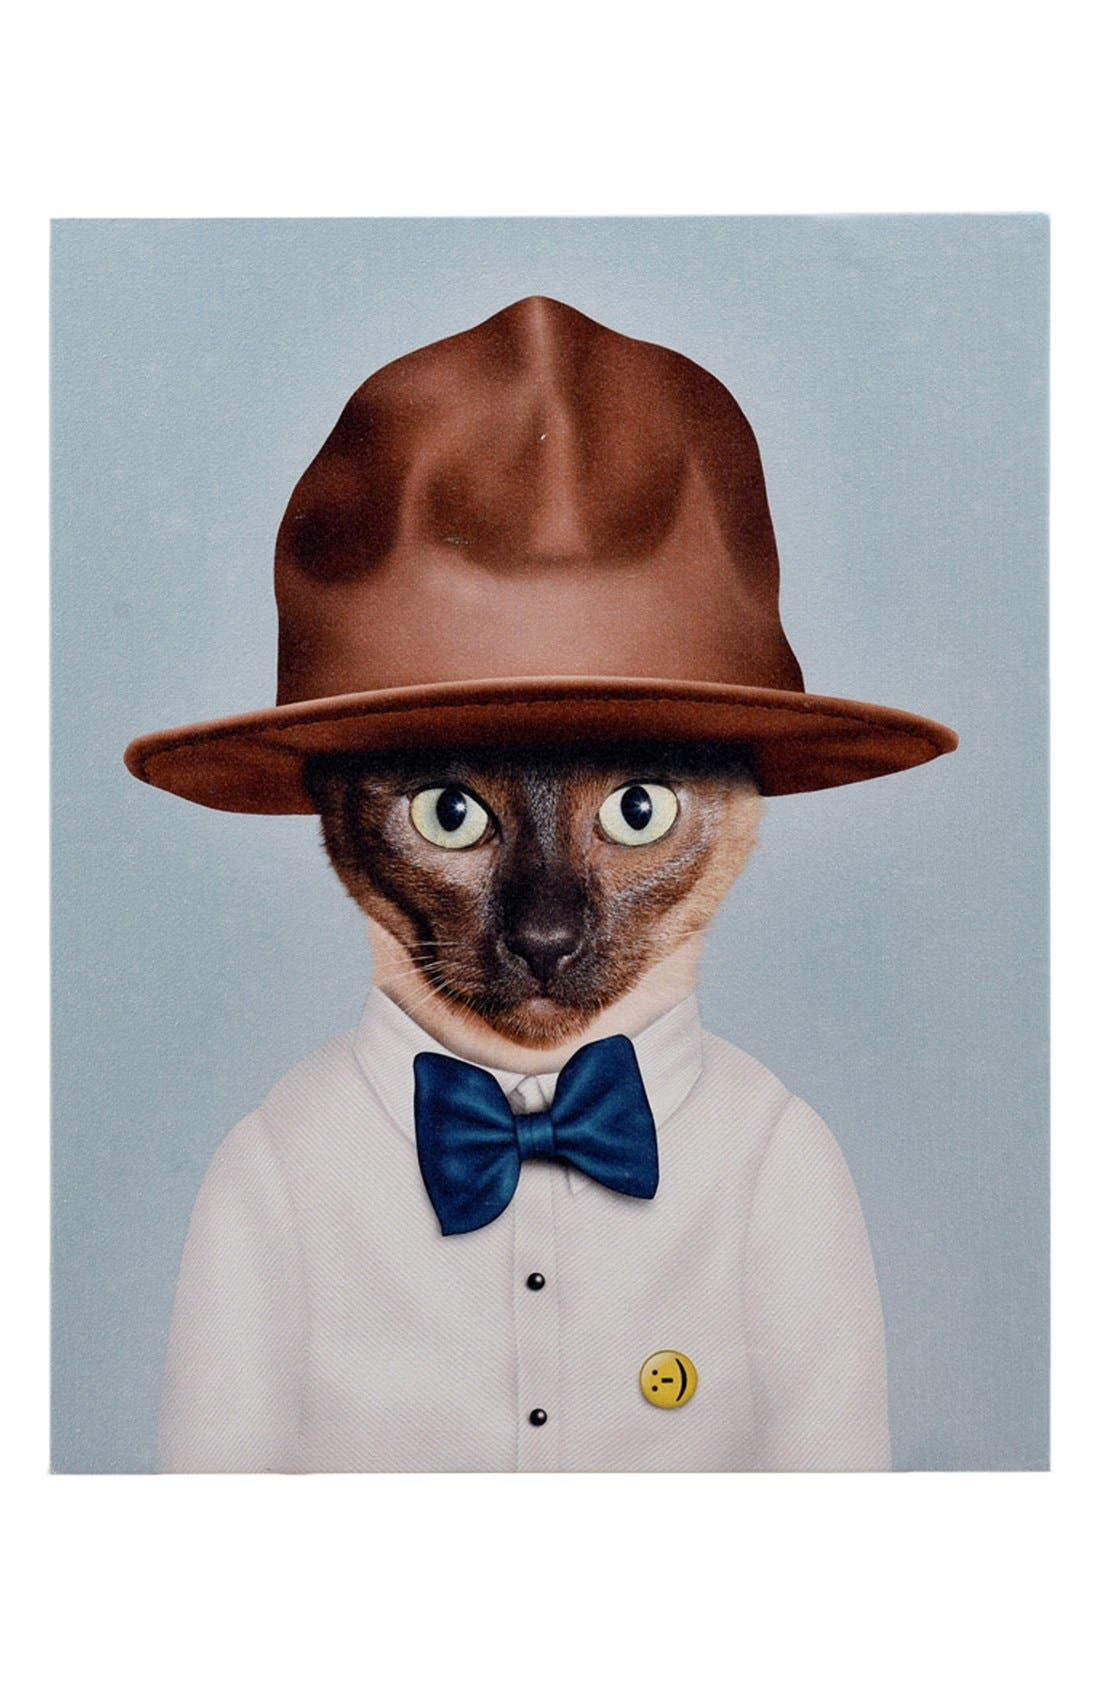 EMPIRE ART DIRECT 'Pets Rock™ - Purrell' Giclée